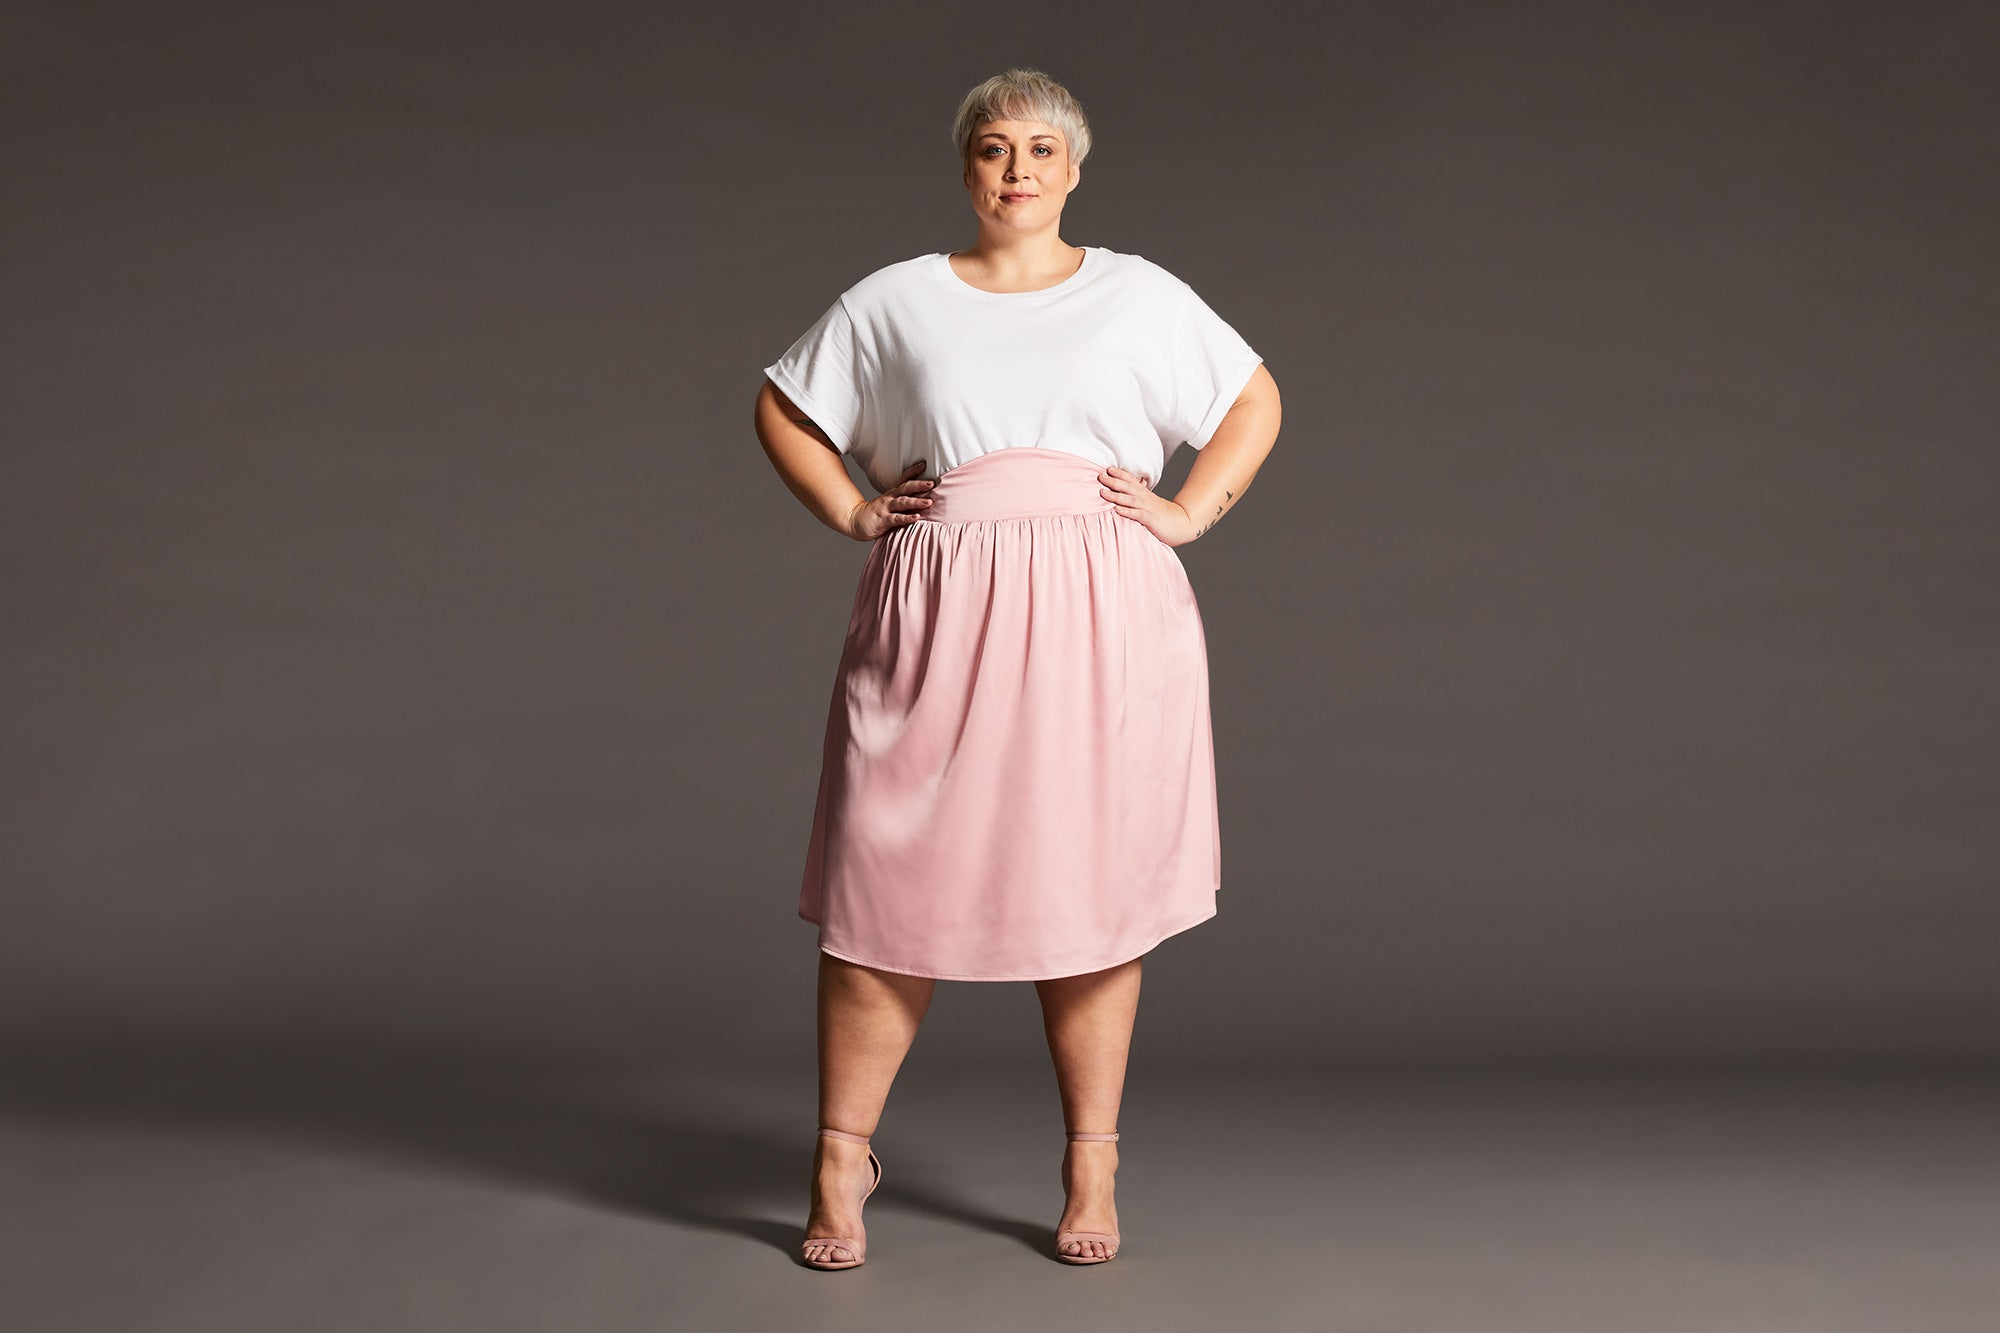 Product focus: Sally skirt